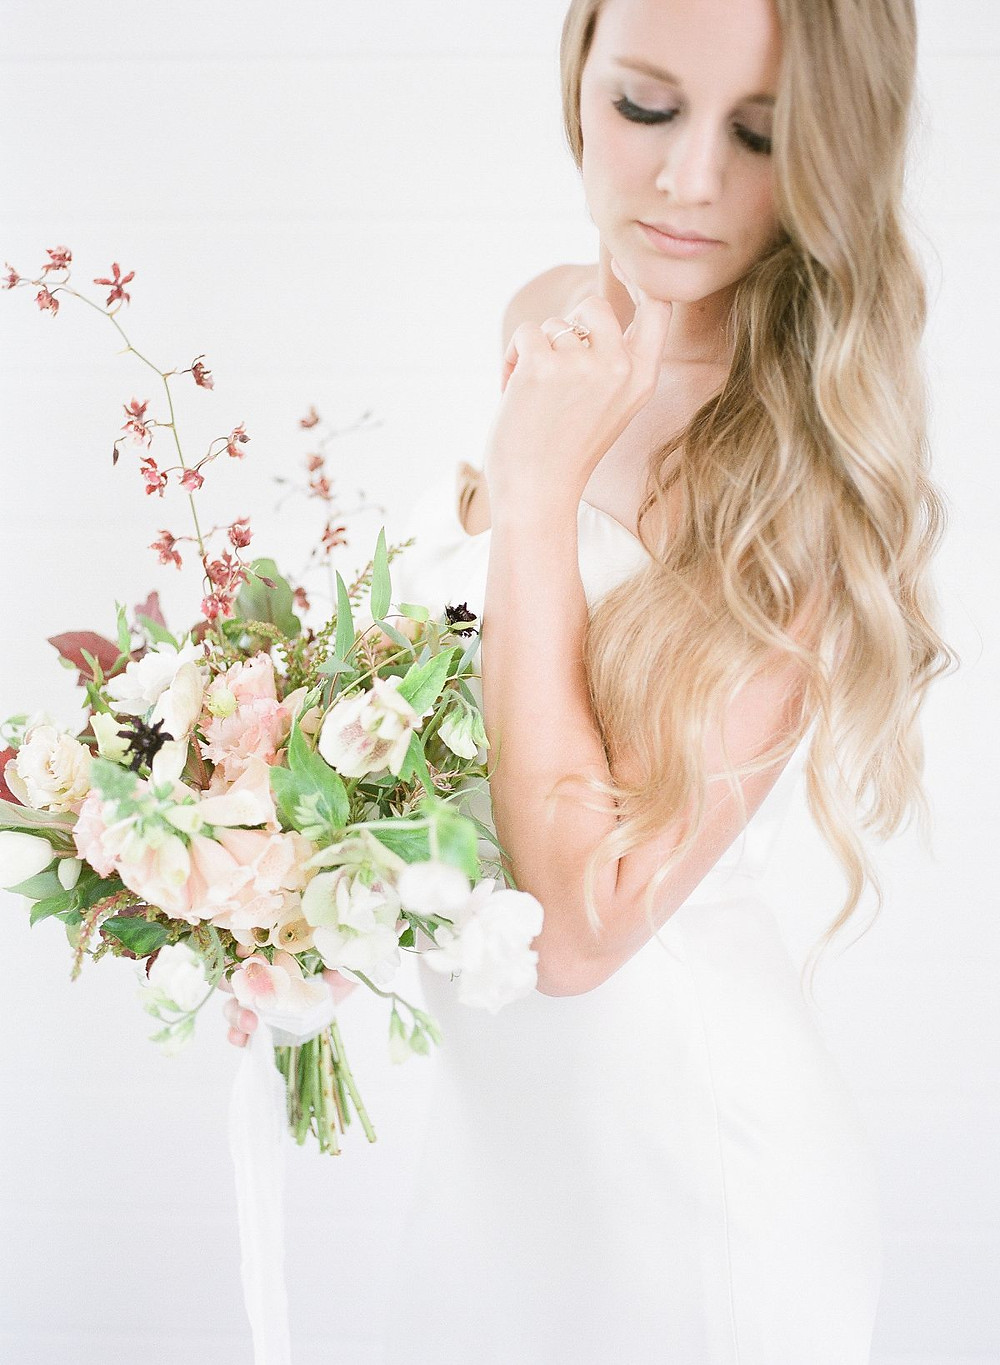 Minimalist bride with Studio Bloom Iowa neutral colored bridal bouquet with foxglove, orchids, lisianthus, and hellebores